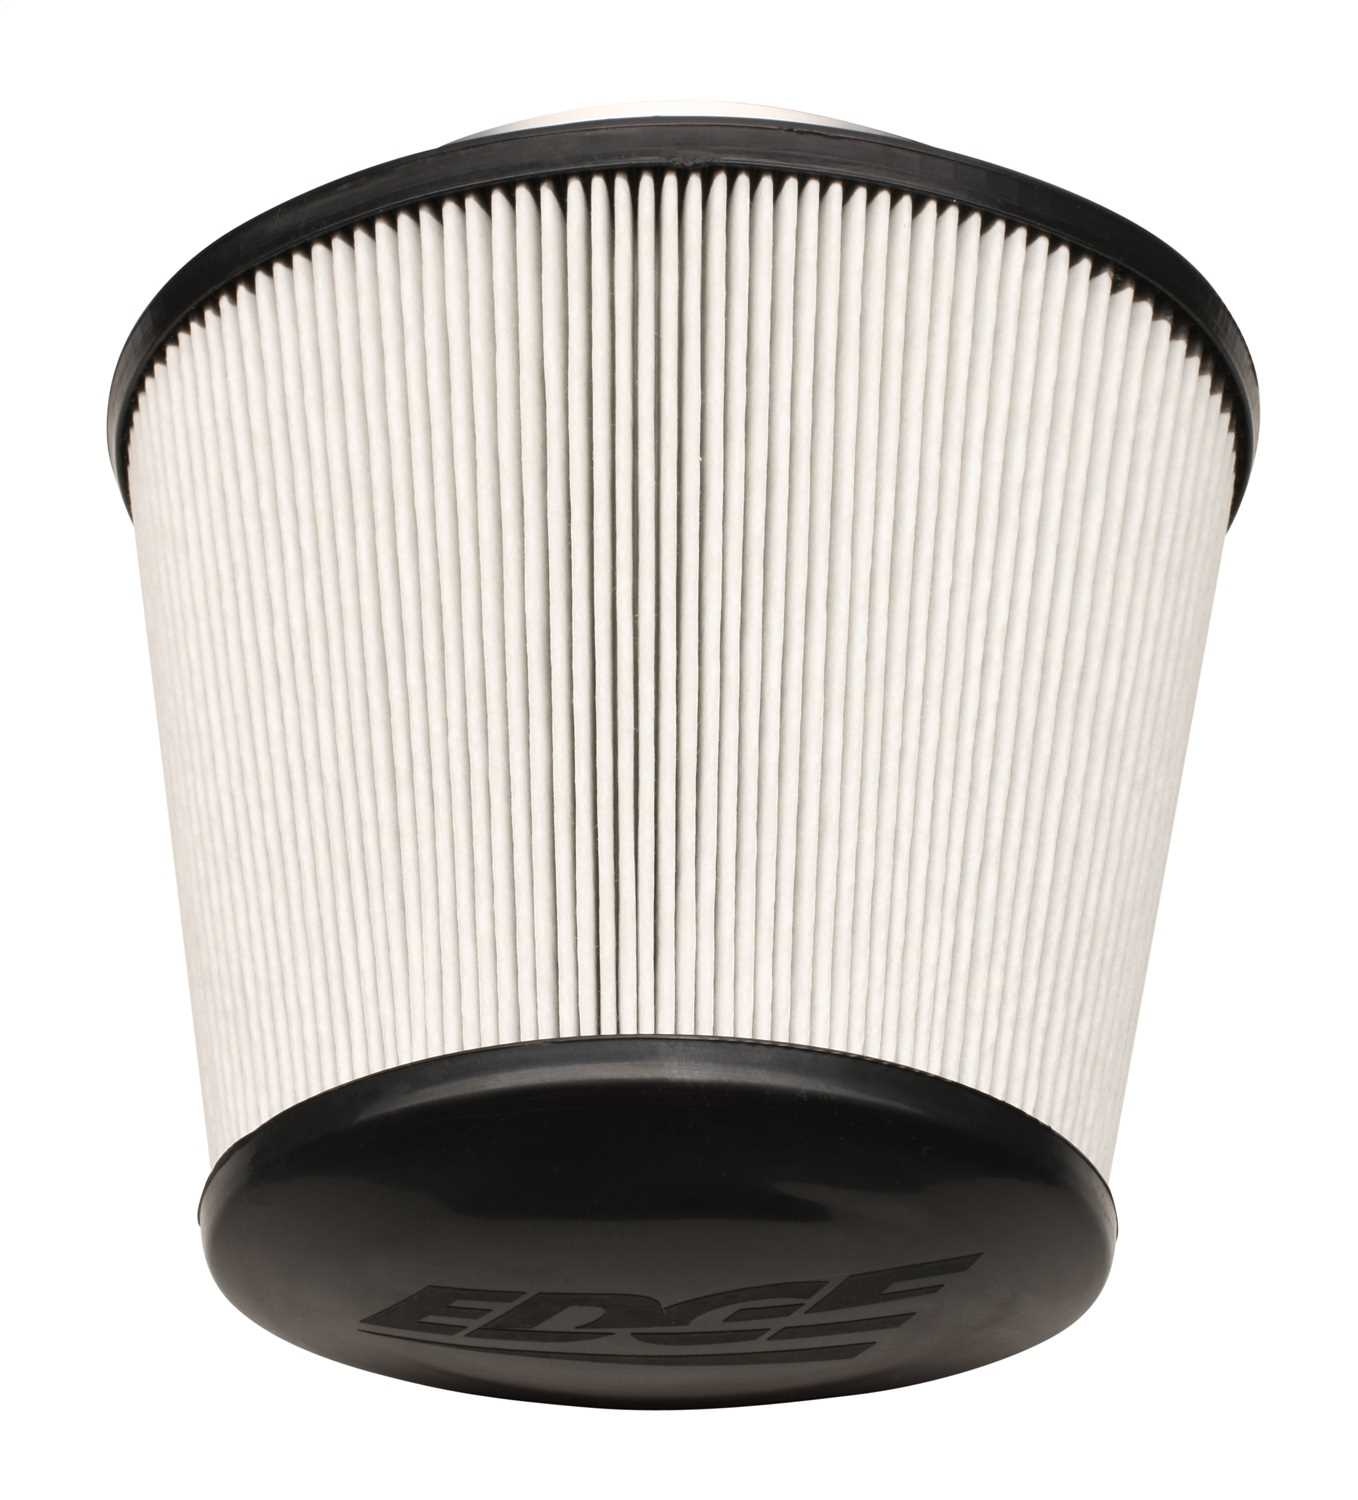 88004-D Edge Products Jammer Filter Wrap Covers